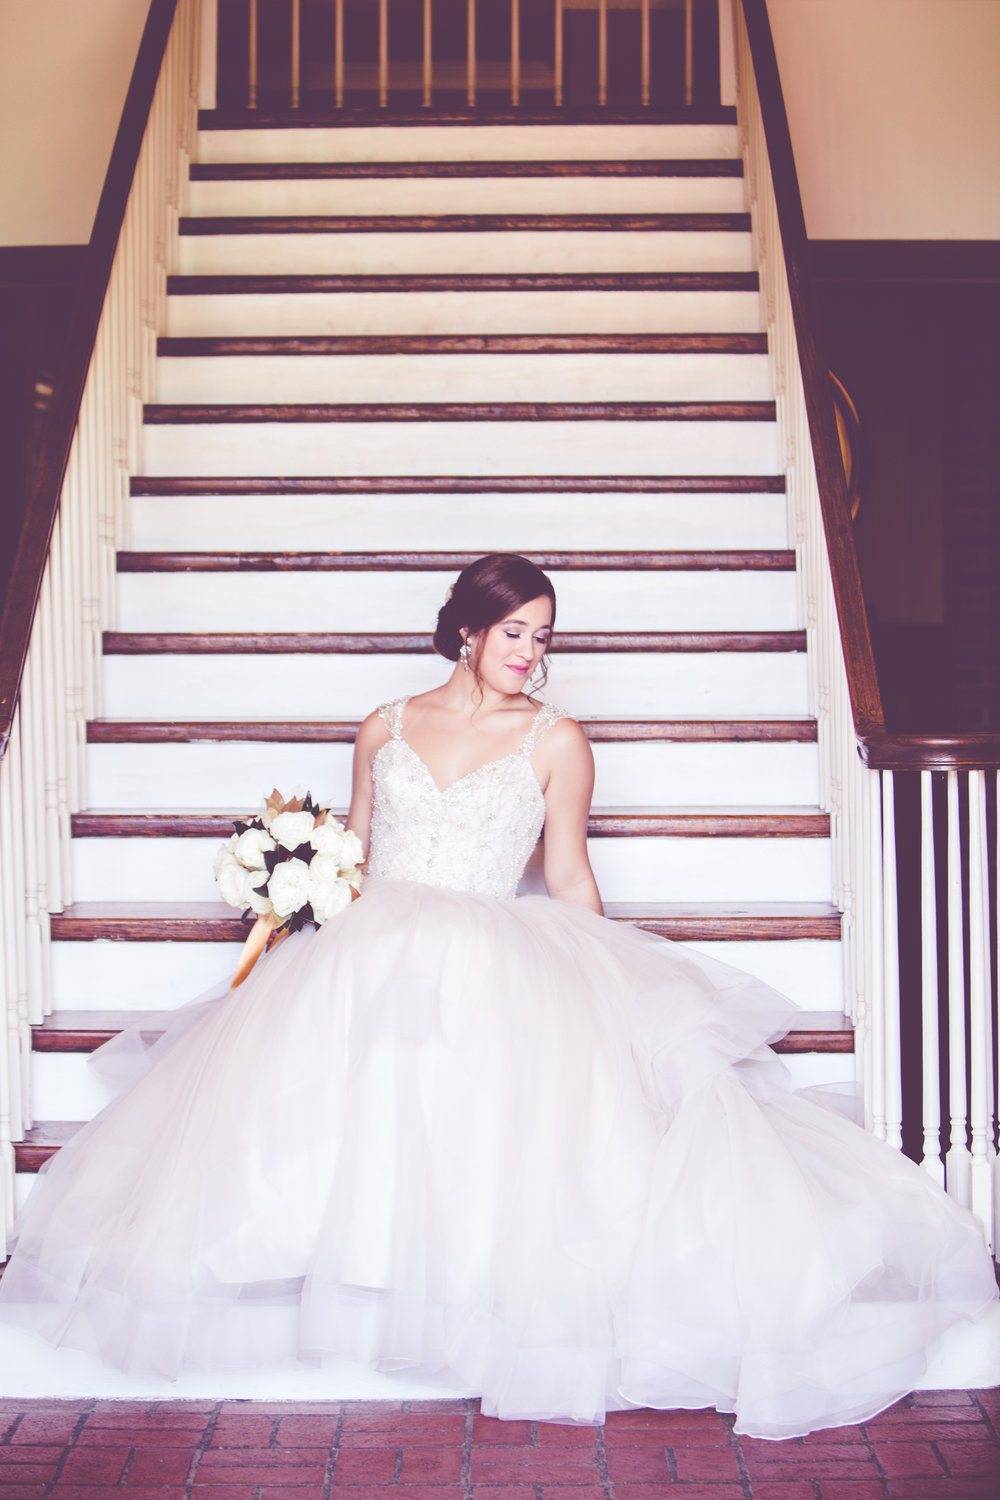 Image: Rachel Erin Photography for Southern Celebrations Magazine